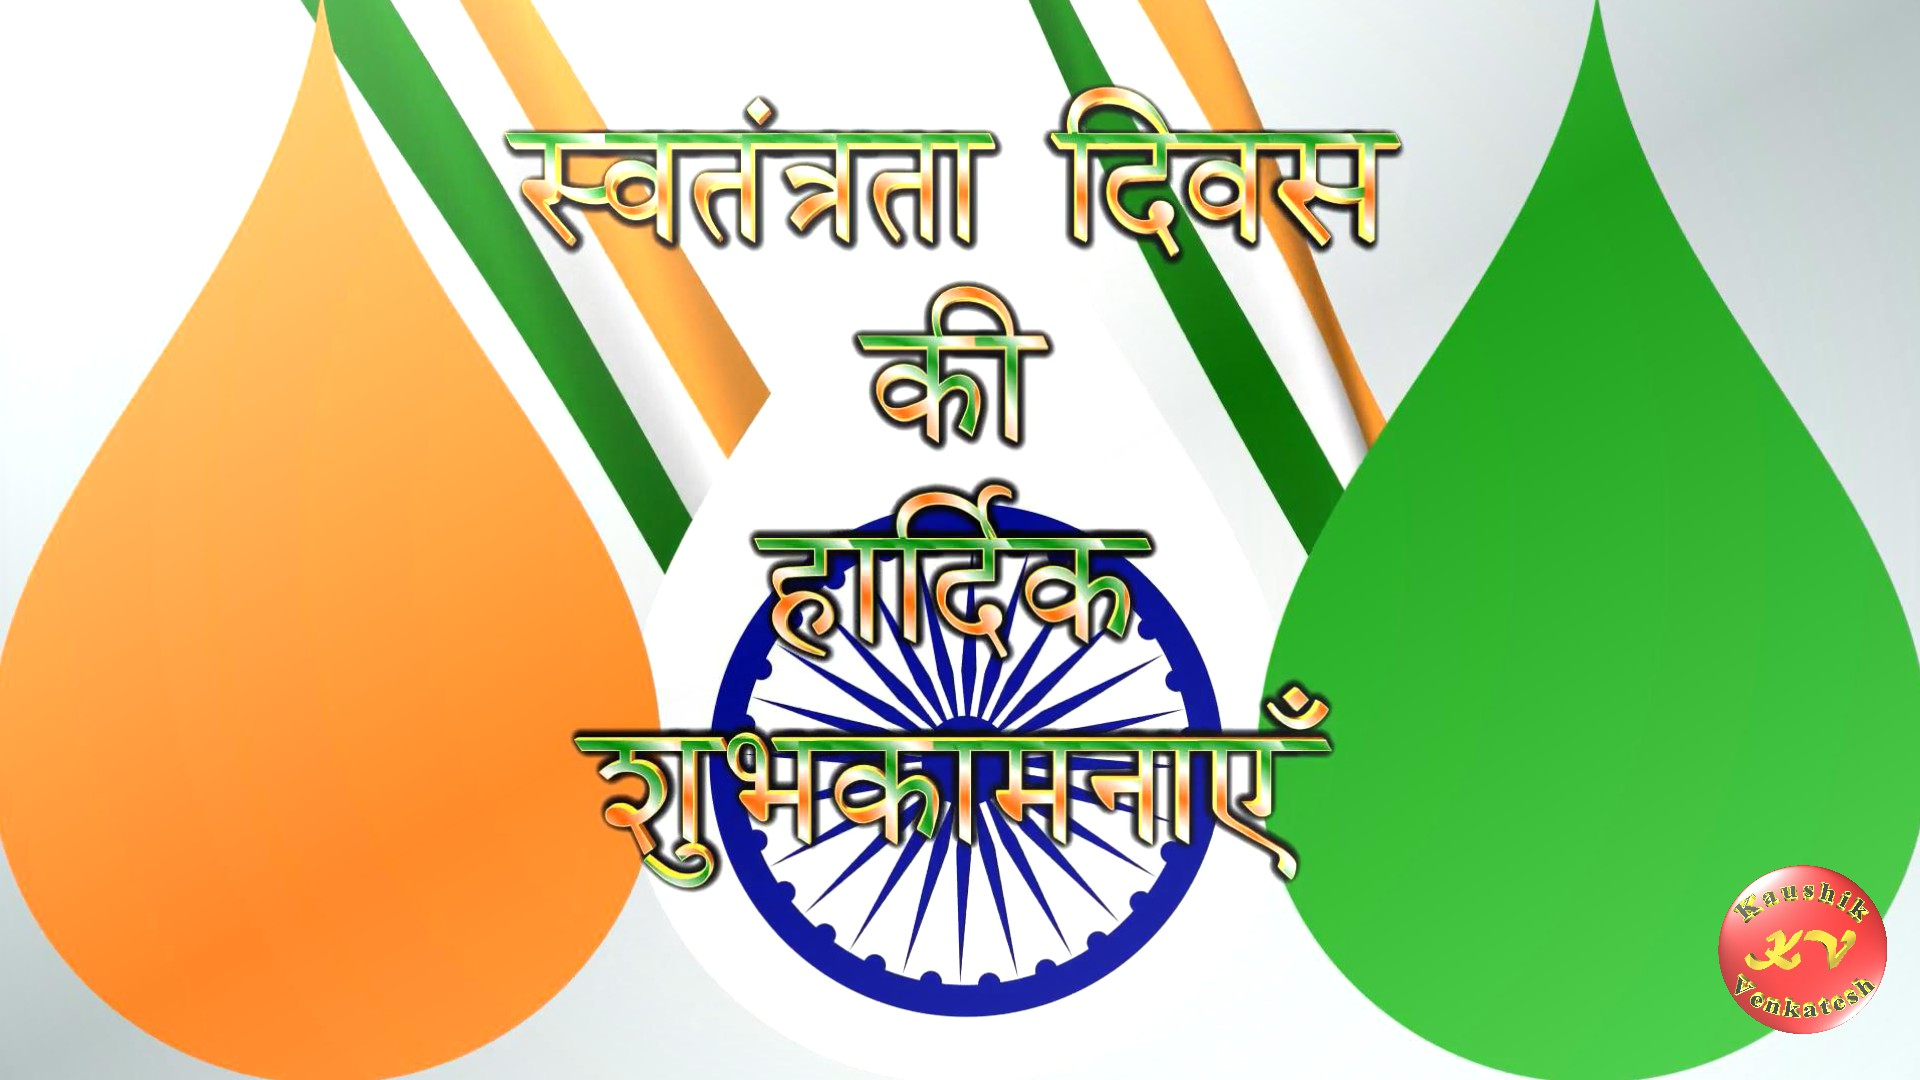 Greetings for Independence Day of India.